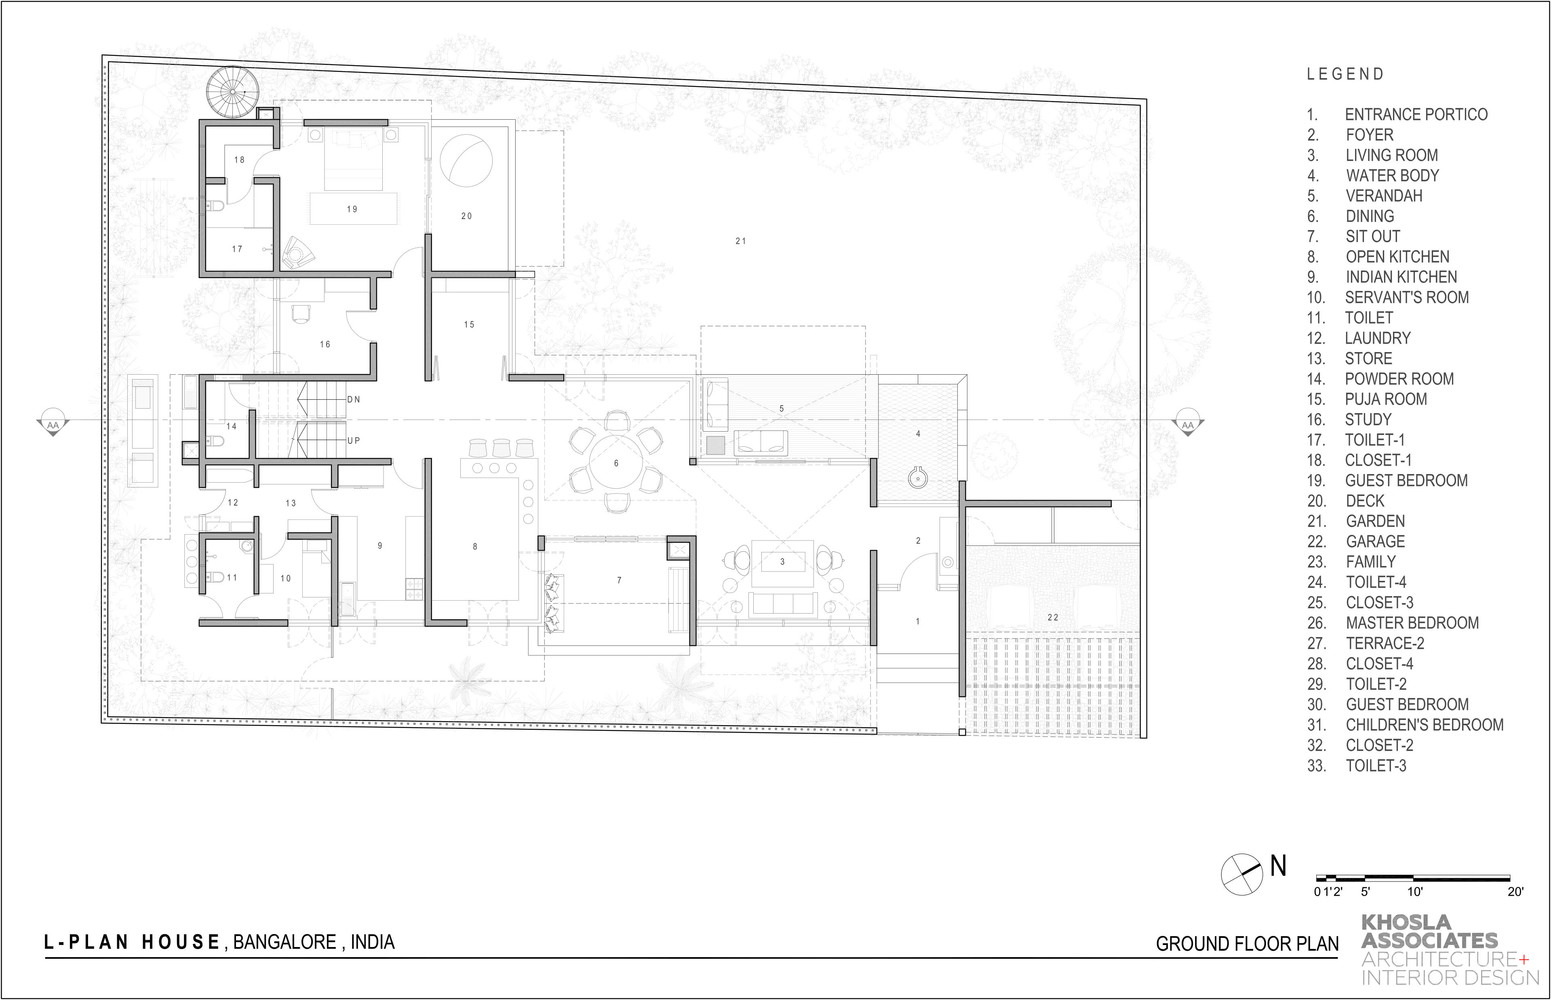 Gallery of L- Plan House / Khosla ociates - 18 on 1 bedroom house plans, l-shaped range home plans, 6 bedroom house floor plans, l-shaped building plans, california ranch house plans, l-shaped floor plans, simple small house floor plans, authentic old house plans, v house plans, small cabin plans, u-shaped house plans, ranch house floor plans, l-shaped roof plans, small ranch house plans, l-shaped horse barn plans, l-shaped cottage plans, deck plans, i house plans, h shaped home plans, small cottage floor plans,